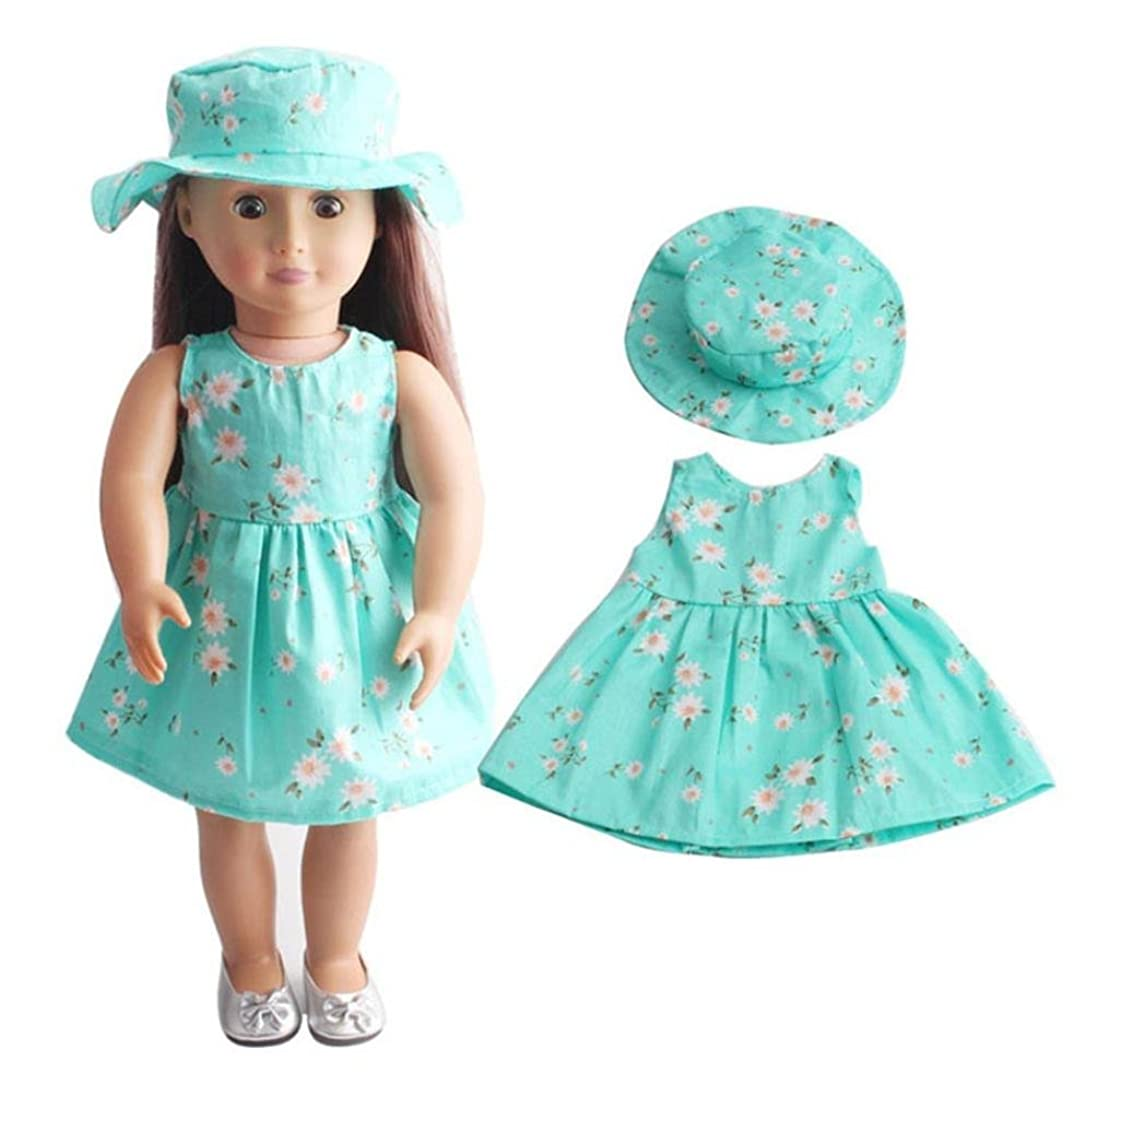 WensLTD Clearance! Skirt&Hat for 18 inch Our Generation American Girl Doll (E)